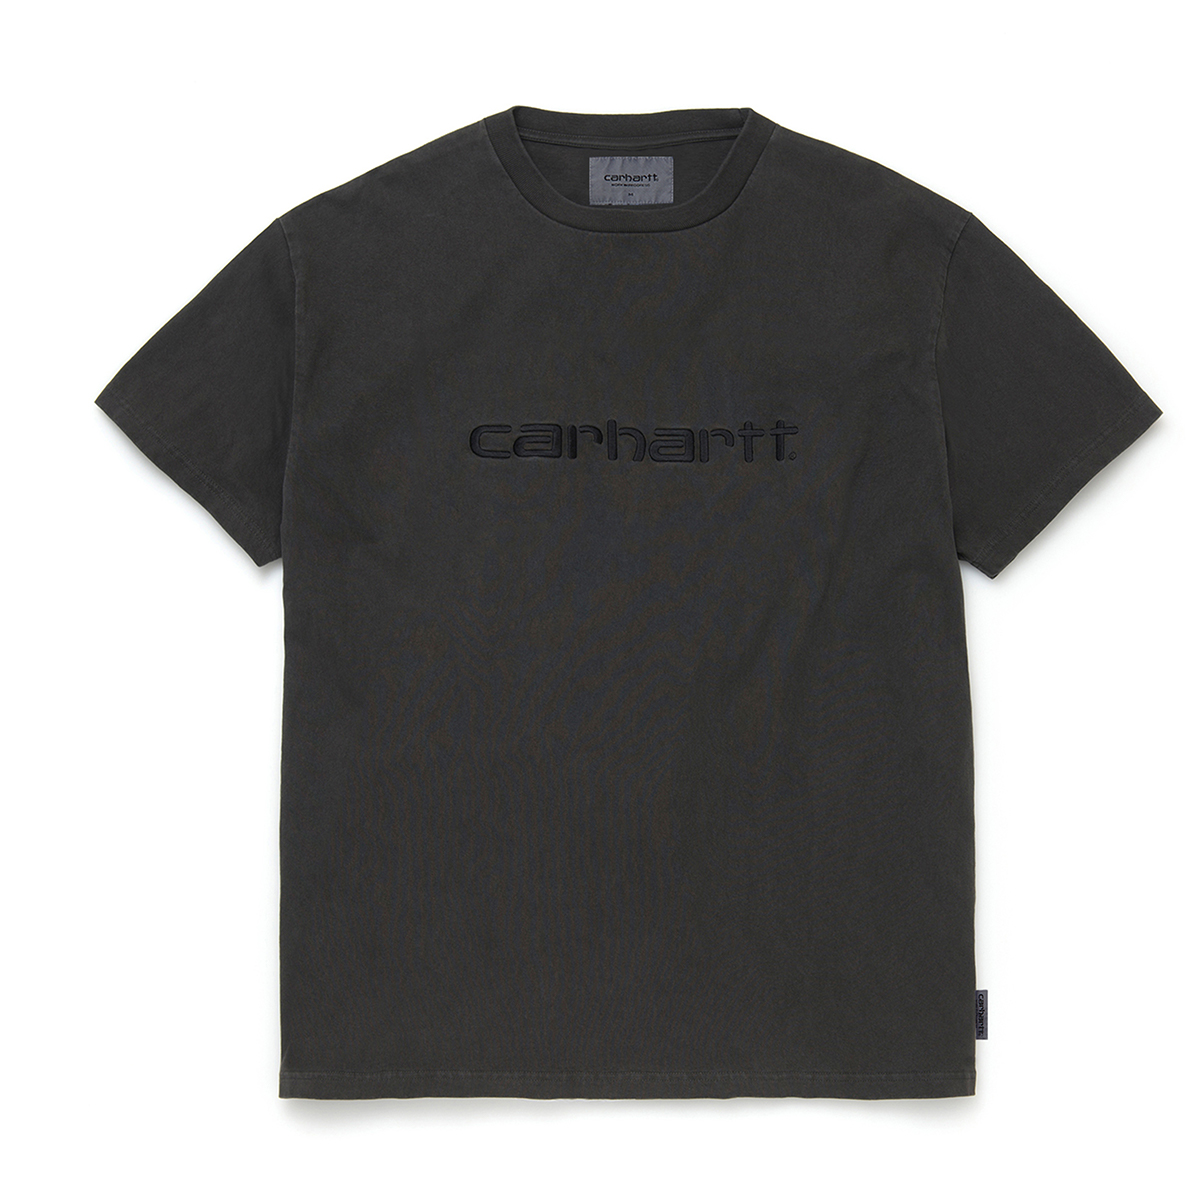 S/S Carhartt Embroidery T-shirt (PD)